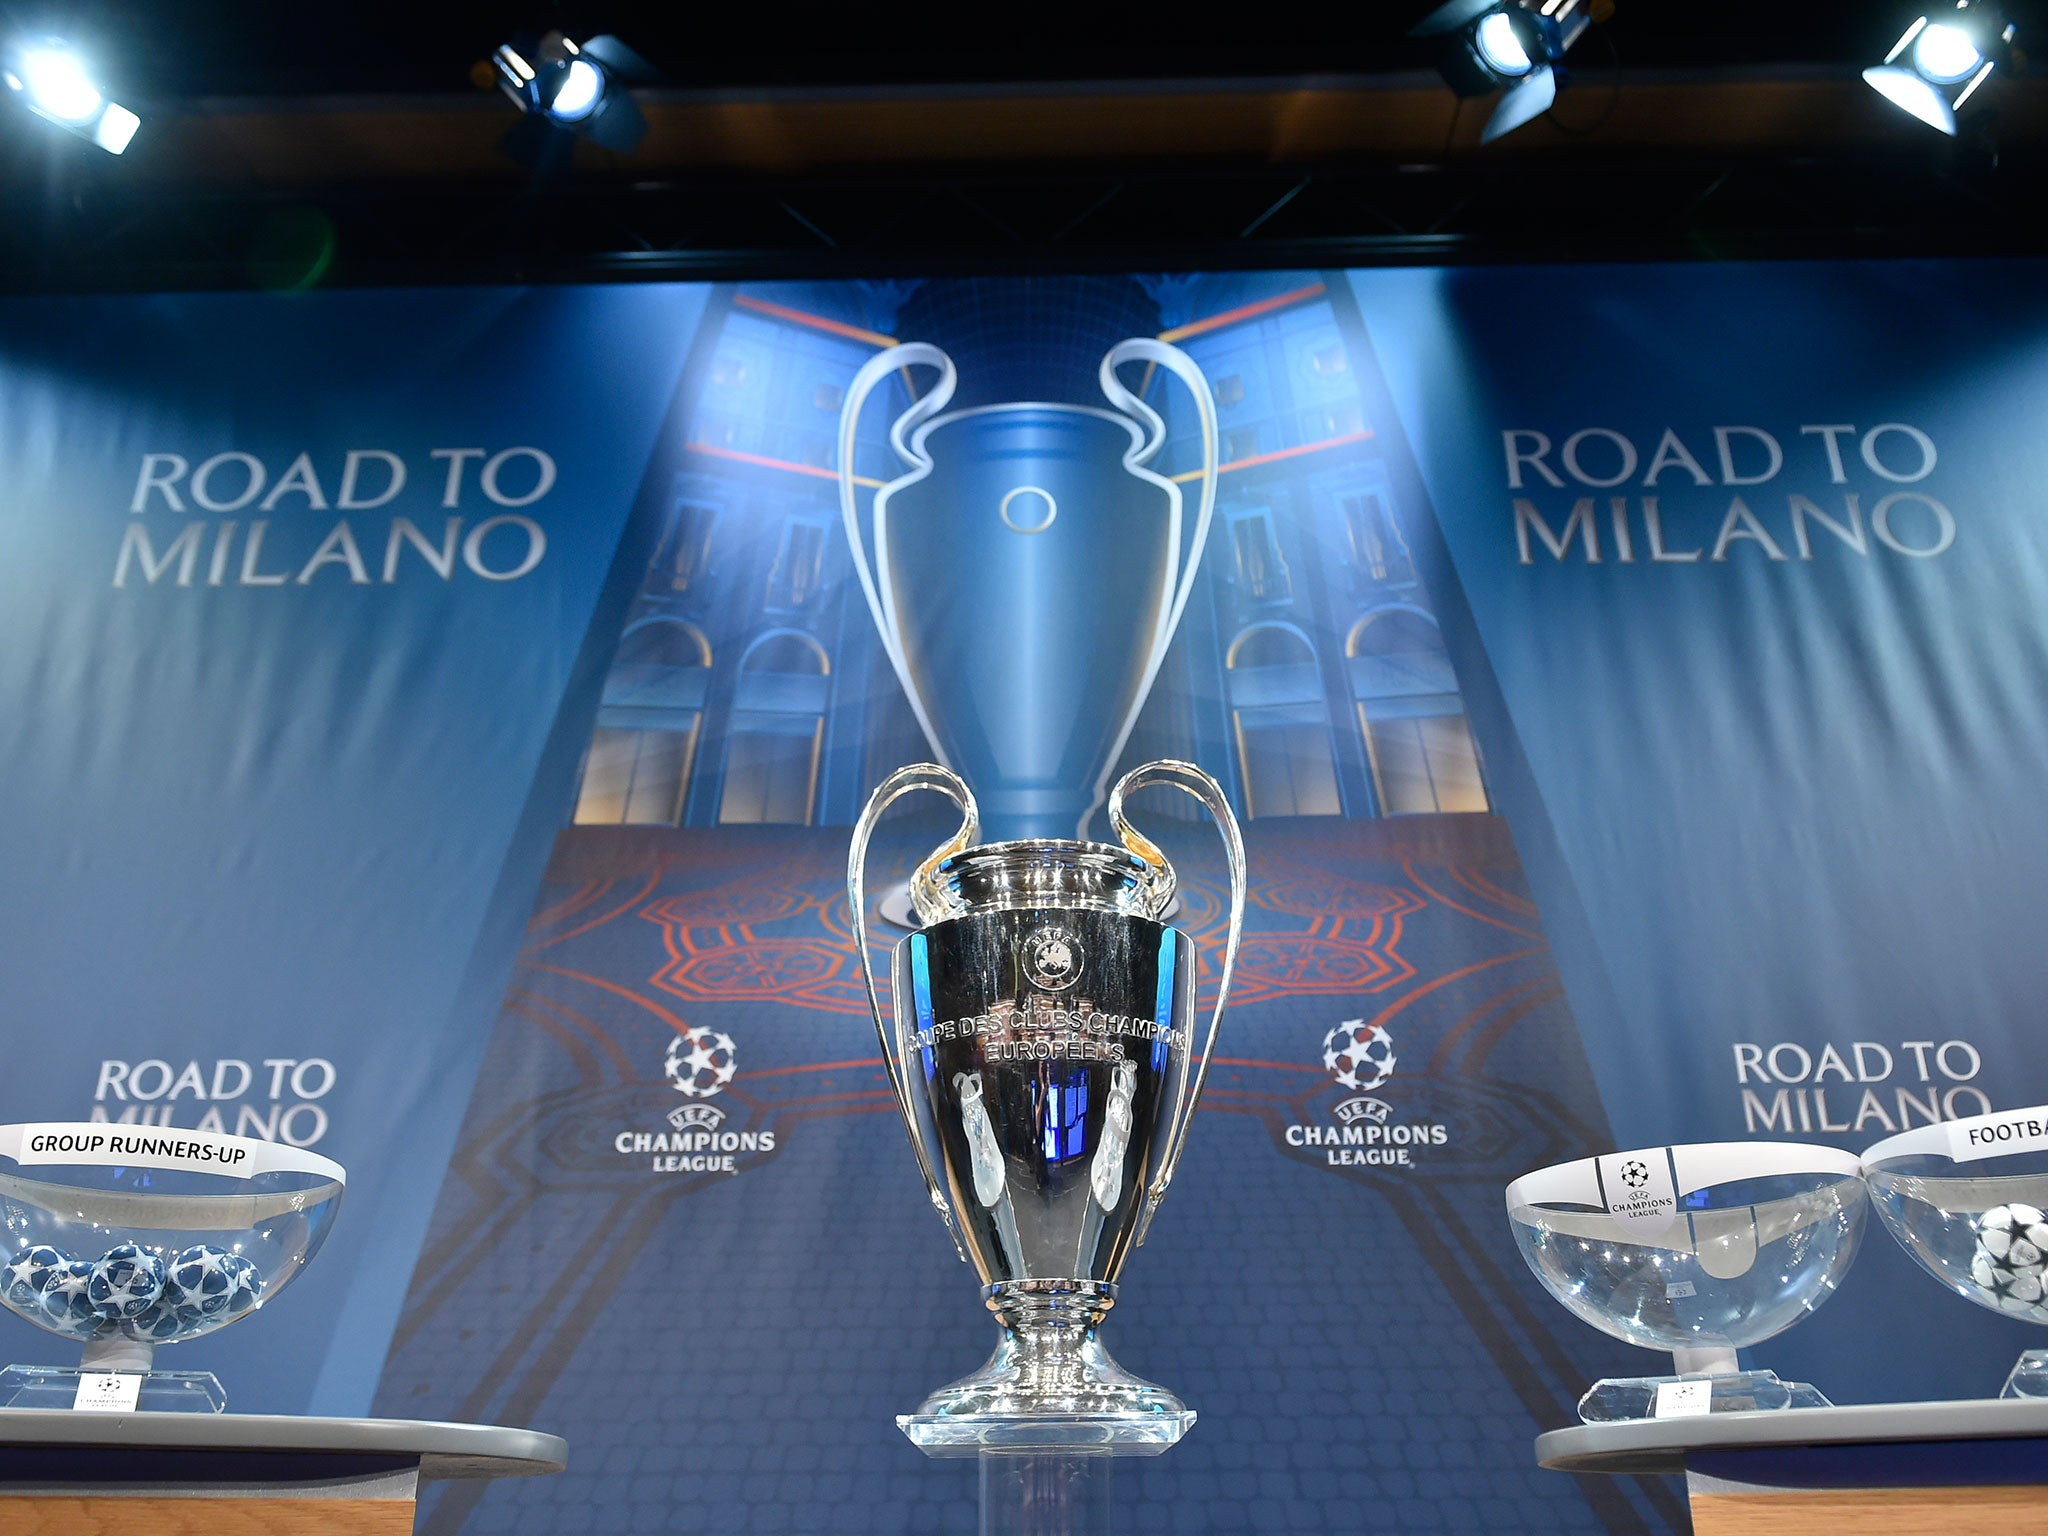 Champions League draw live stream: How to watch group stage draw online and on TV today thumbnail